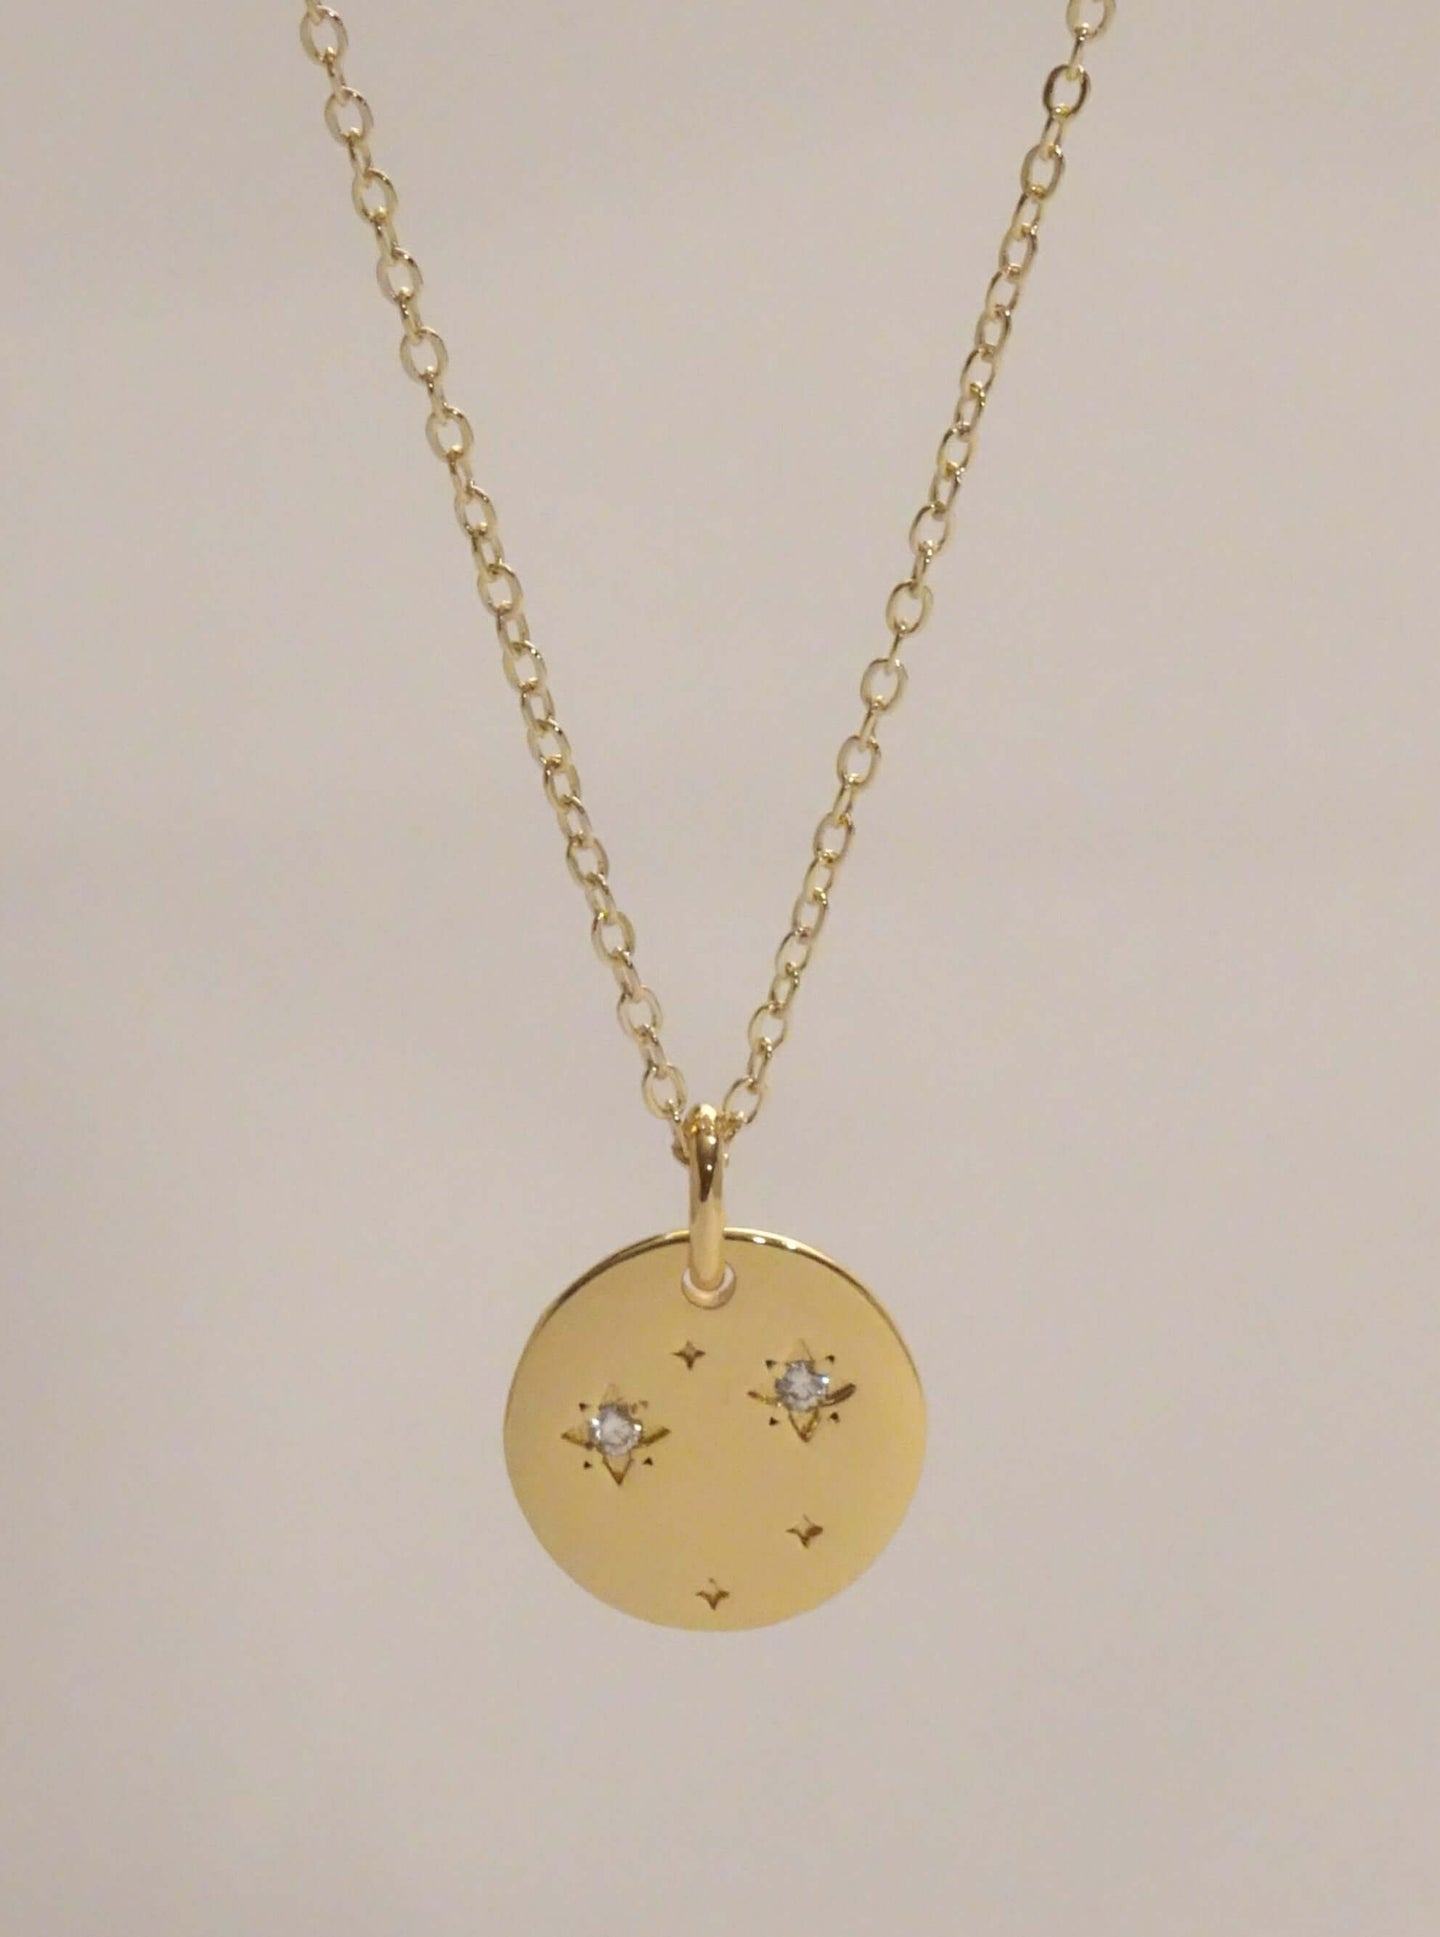 libra necklace, libra necklace gold, libra scale necklace, libra zodiac necklace, libra necklace silver, libra jewelry, zodiac jewelry libra, zodiac sign necklace, zodiac necklace gold, zodiac pendant necklace, zodiac constellation necklace